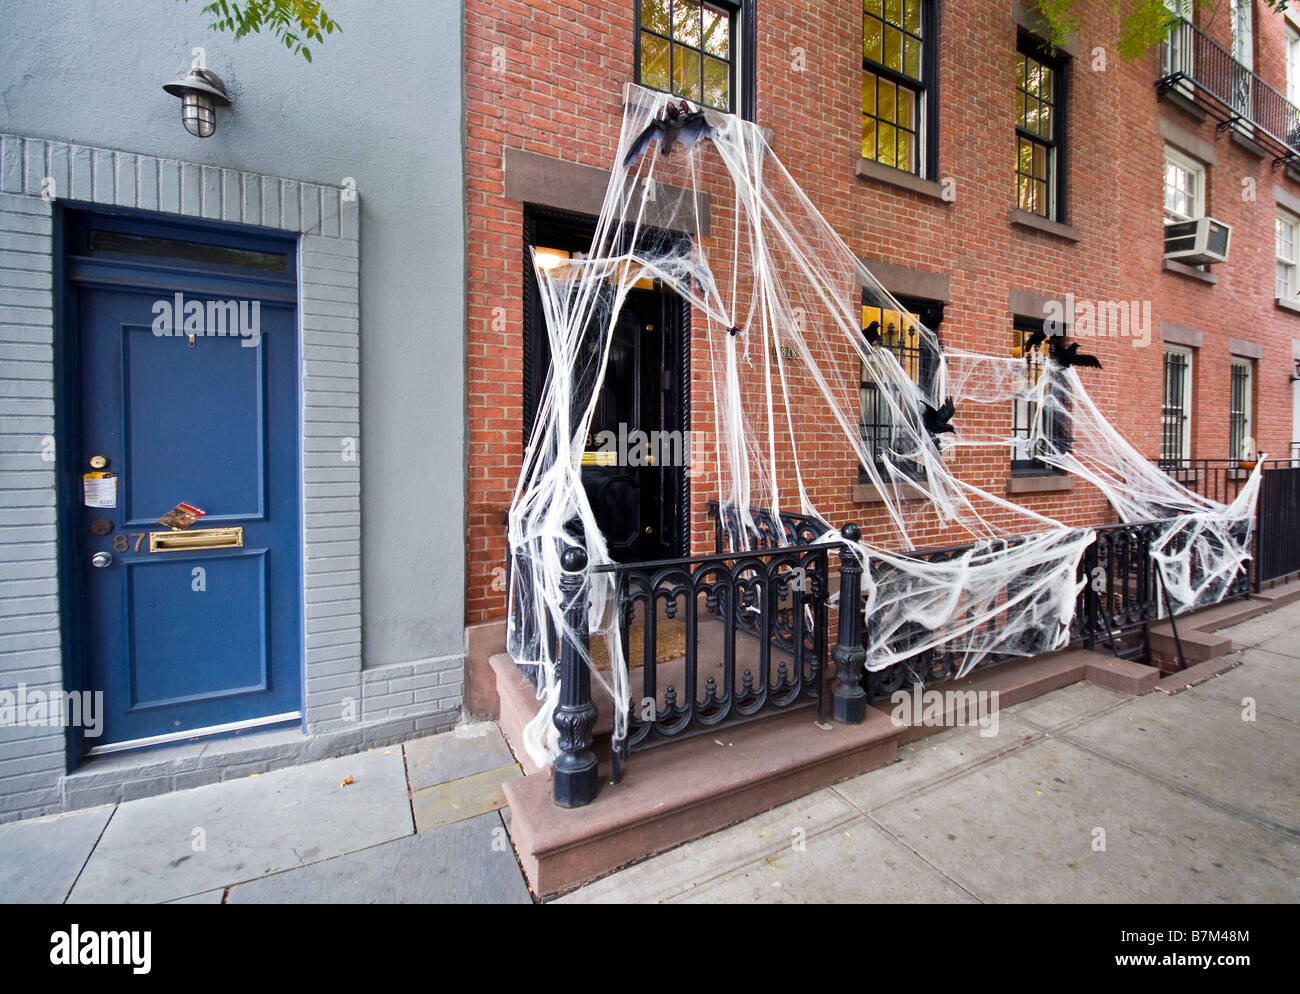 halloween decorations outside house in greenwich village new york usa